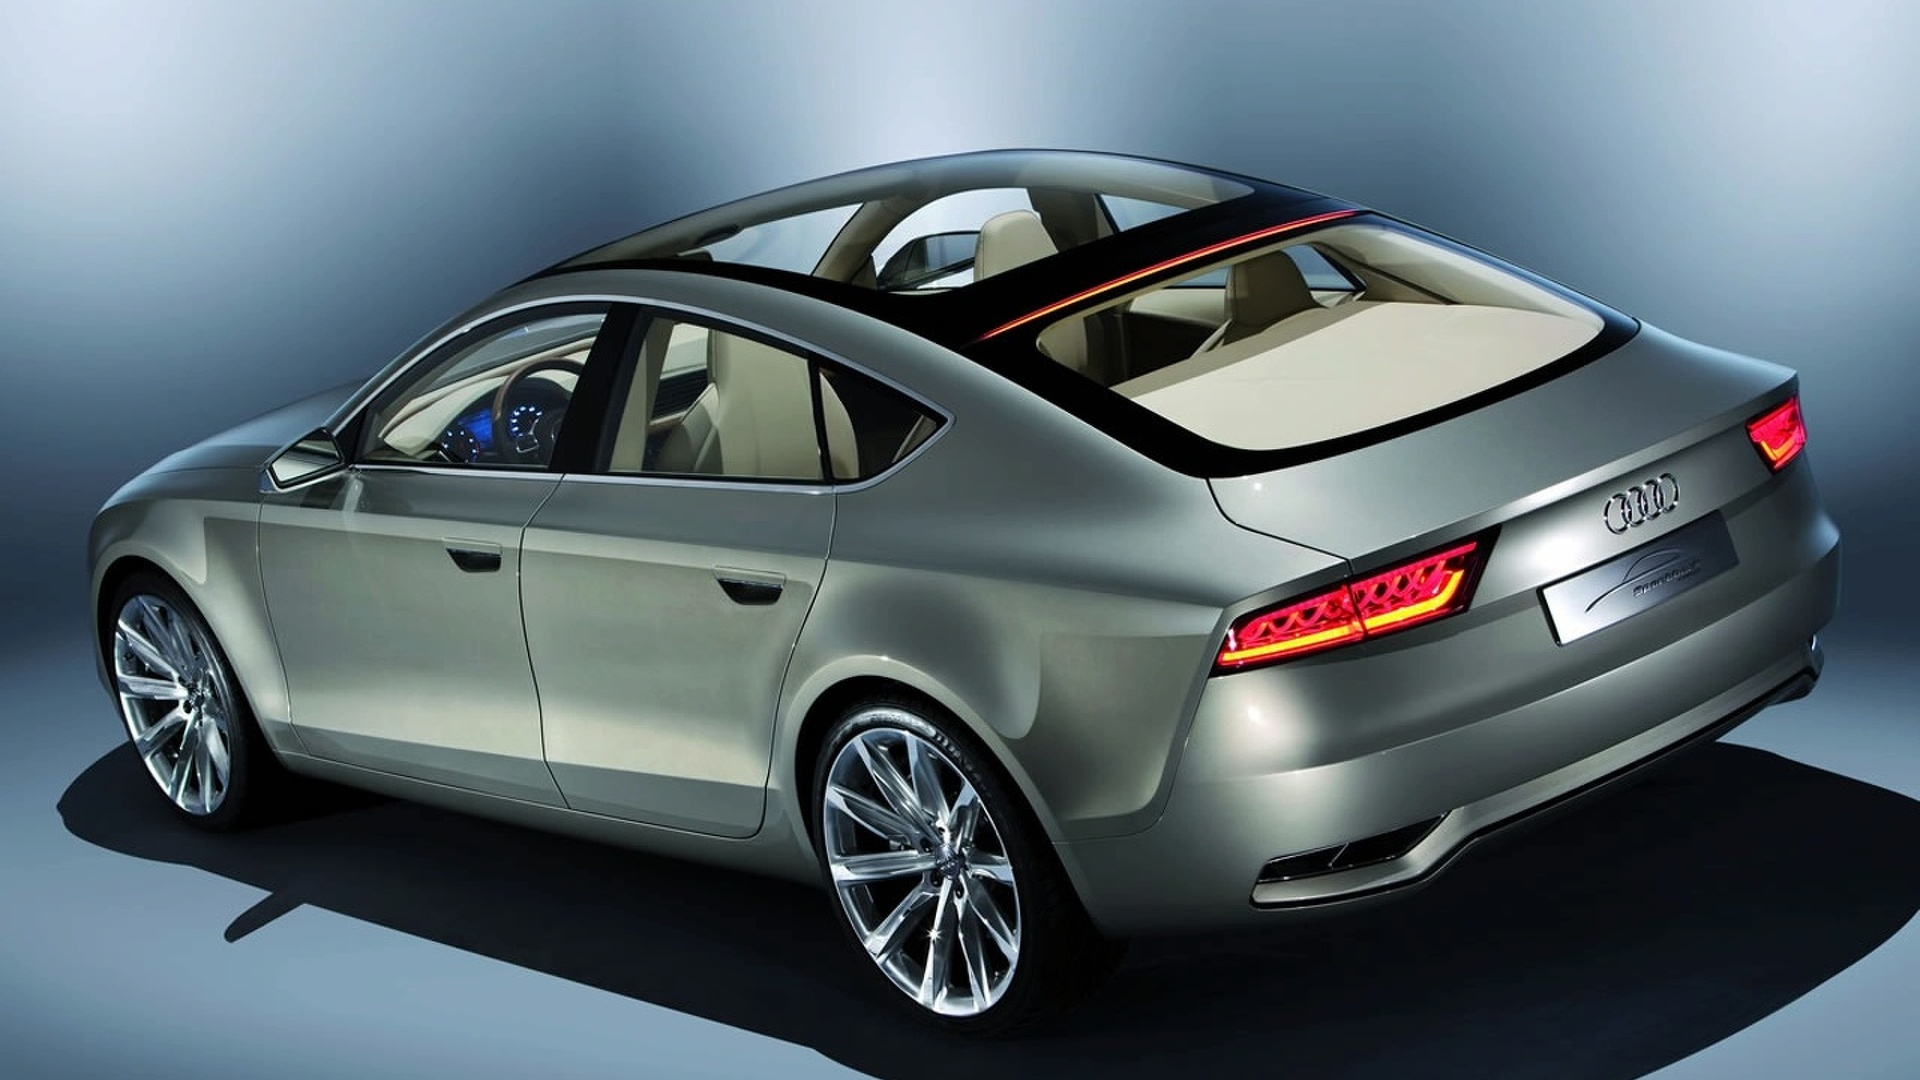 Audi A Confirmed For US And Maybe S But No A Sportback - Audi a5 sportback us